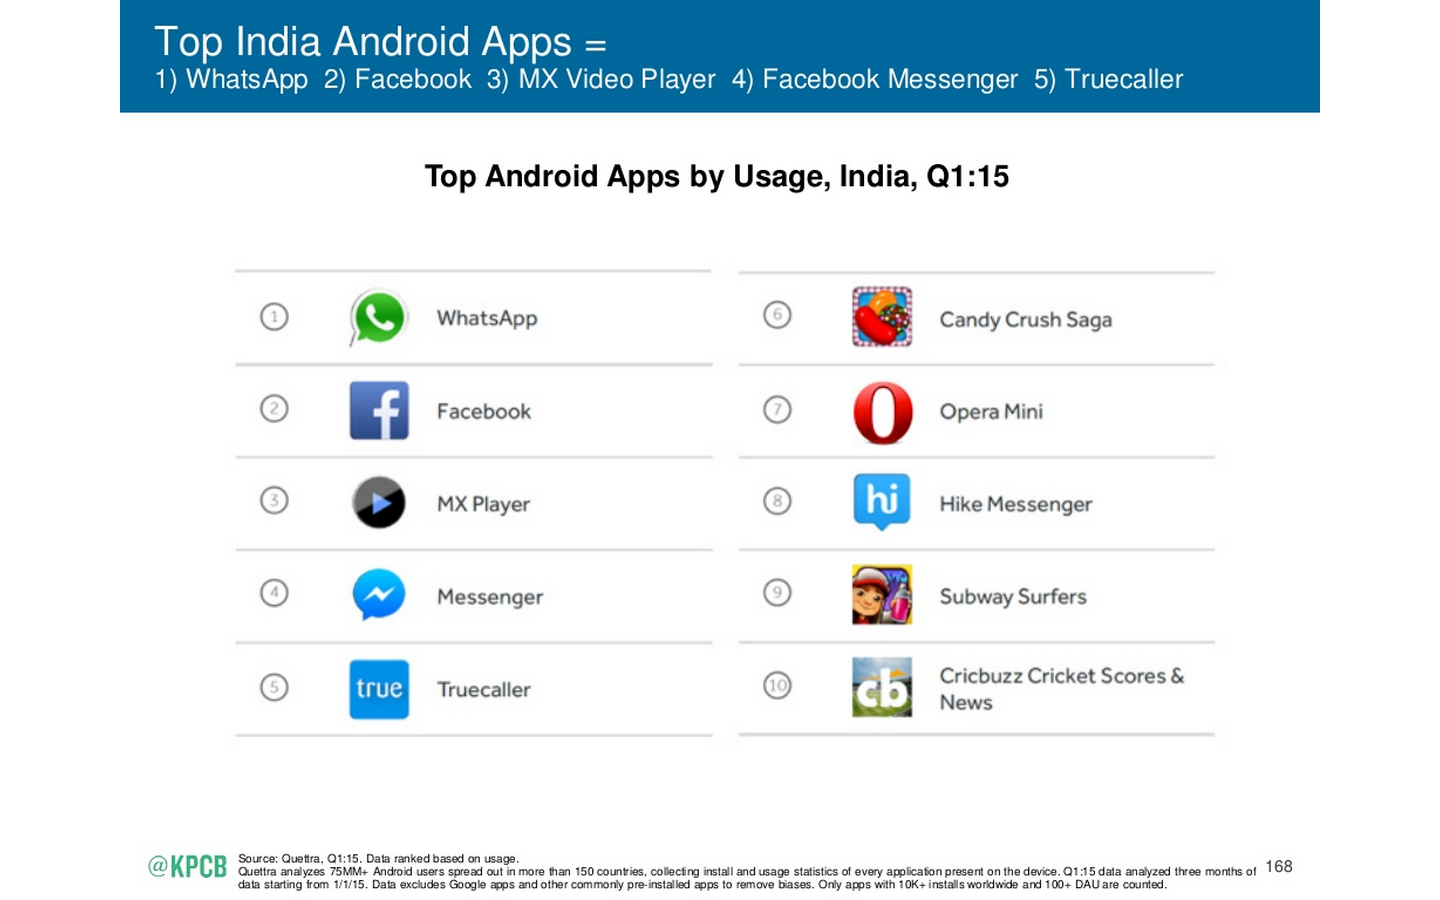 Mobile App Market In India